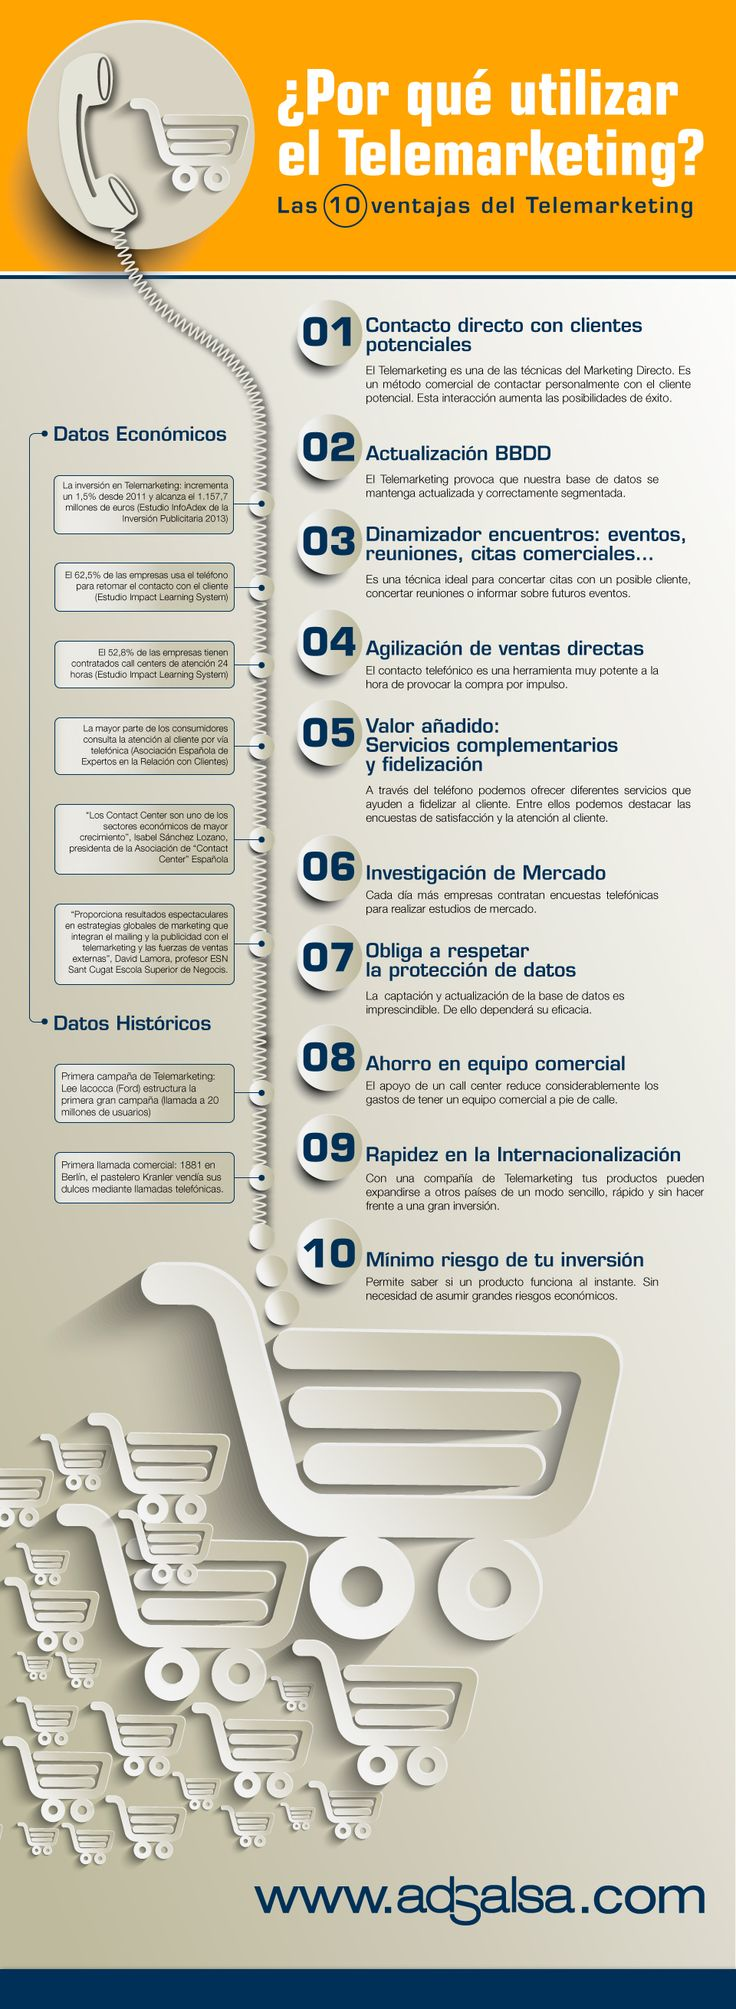 10 ventajas del Telemarketing Fuente: www.adsalsa.com #infografia #infographic #marketing